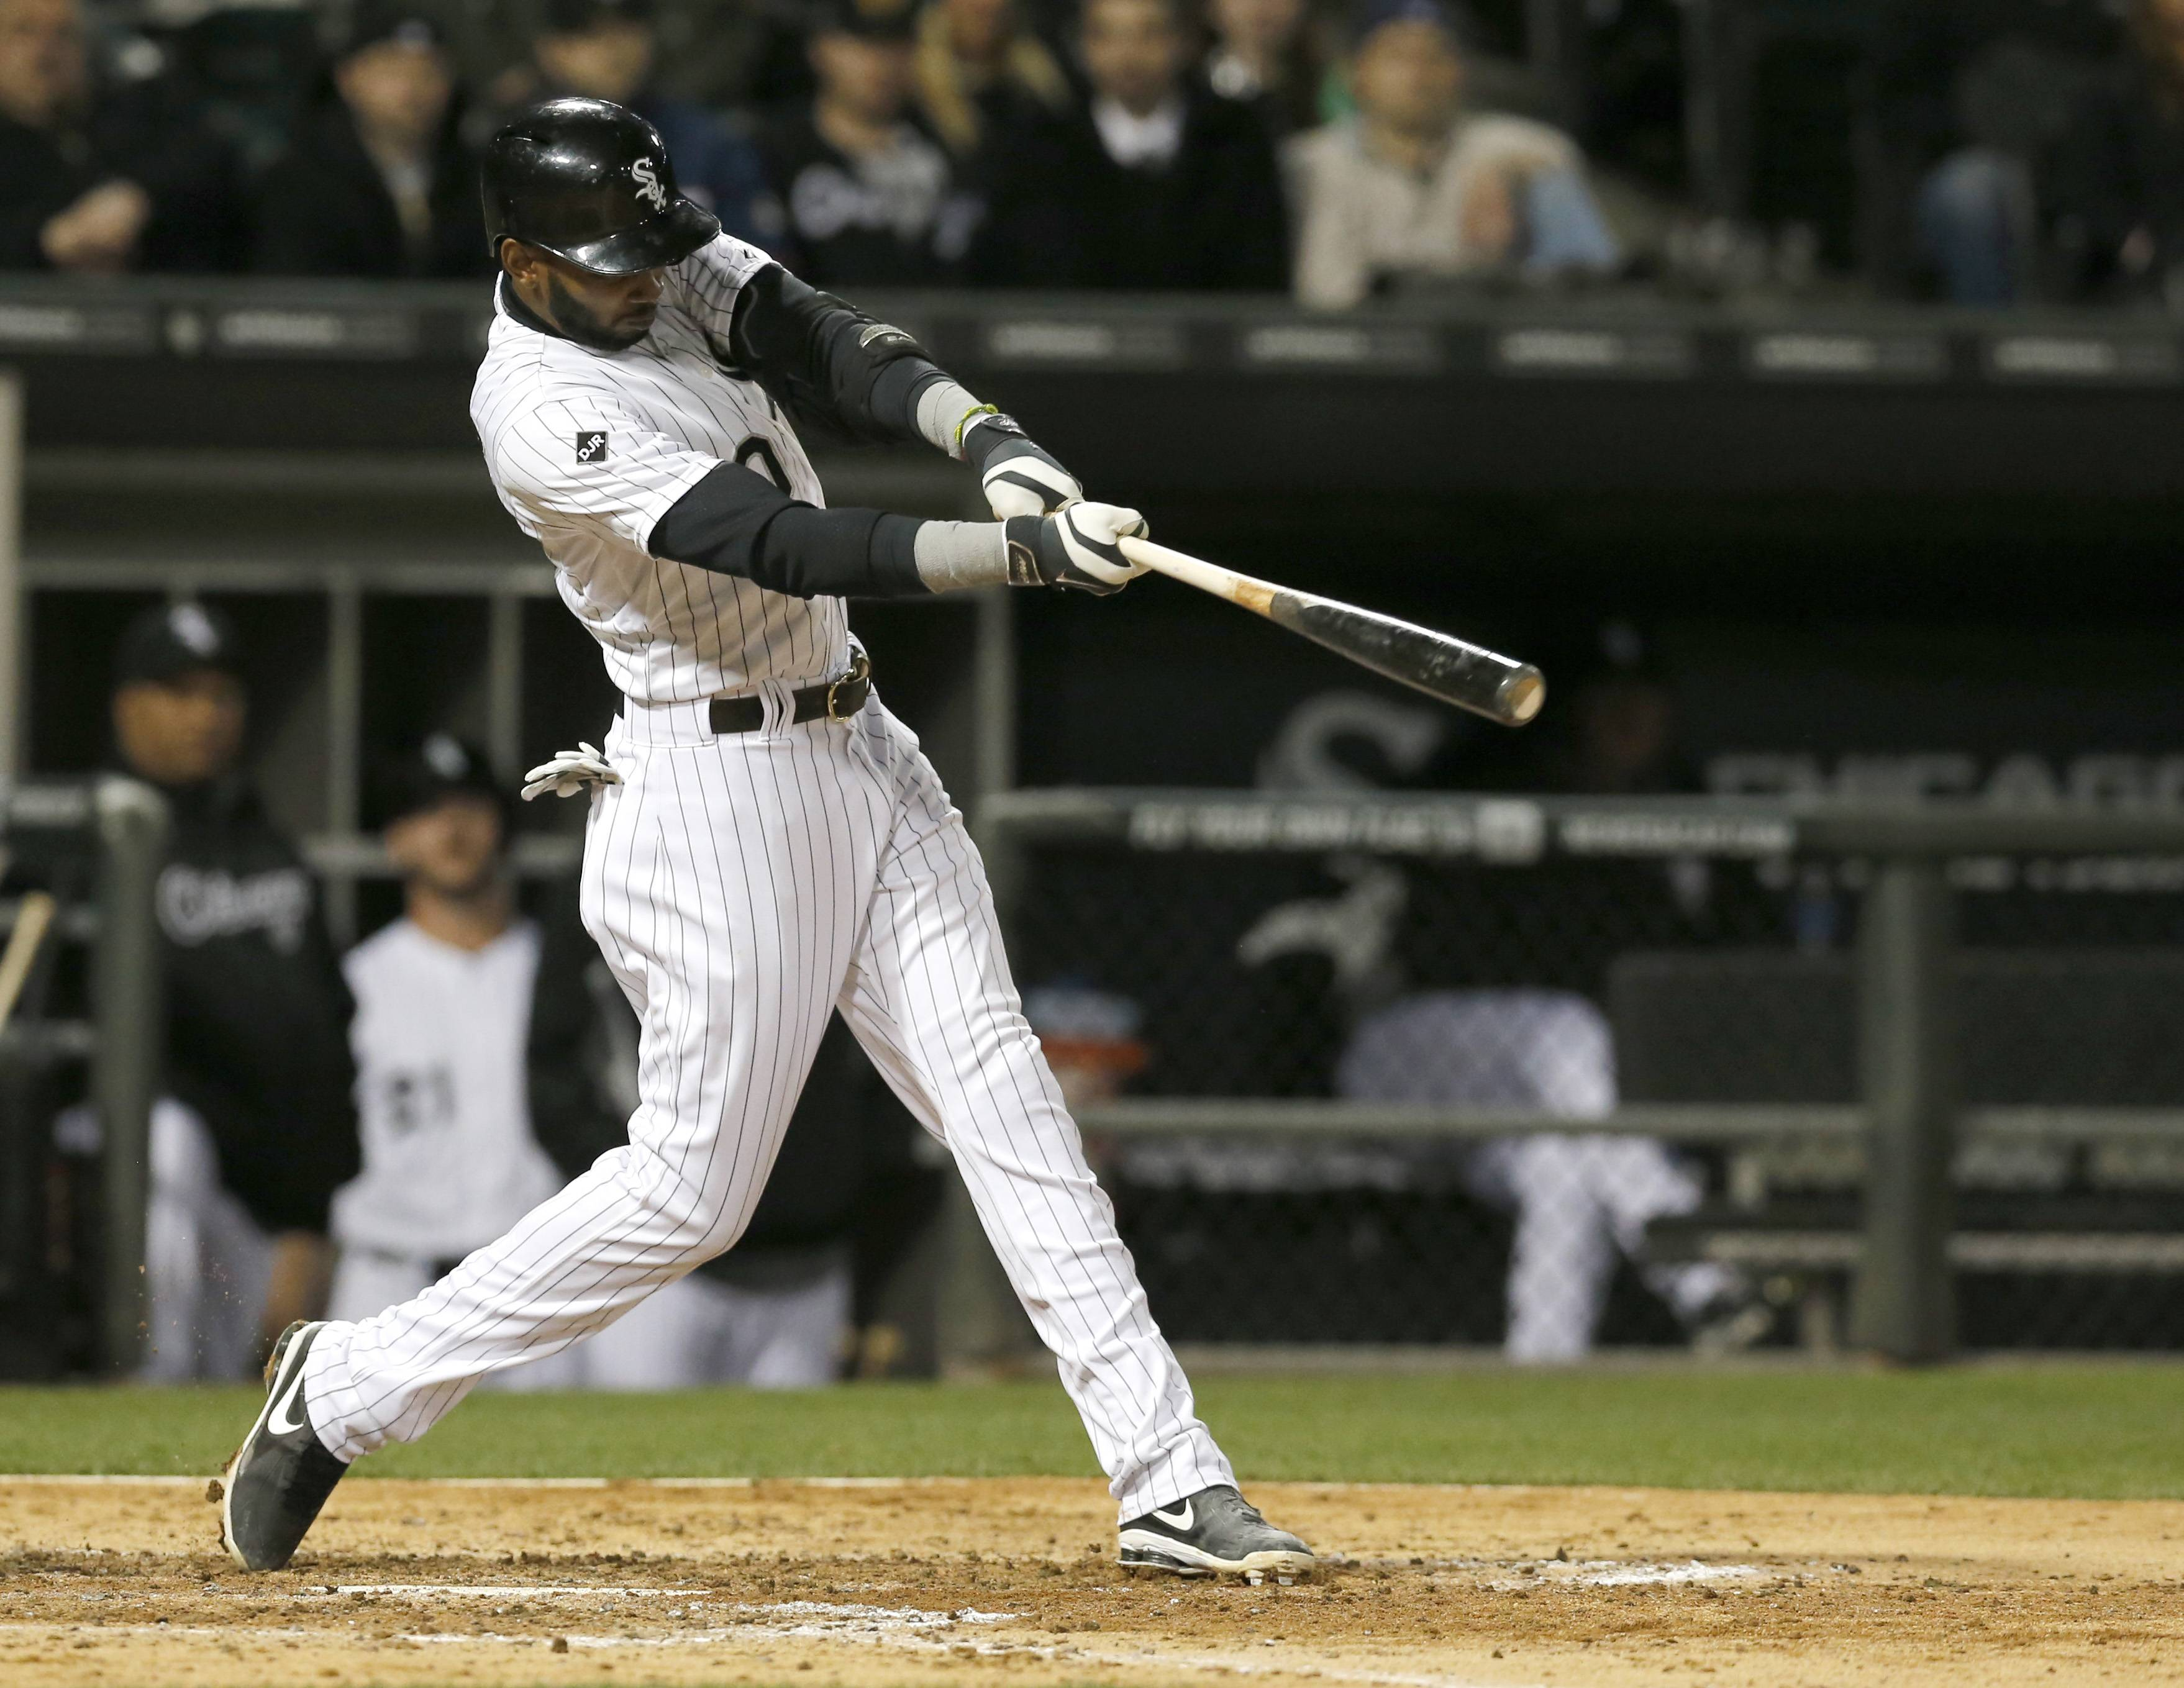 Shortstop Alexei Ramirez's offense definitely has been one of the early highlights for the White Sox.